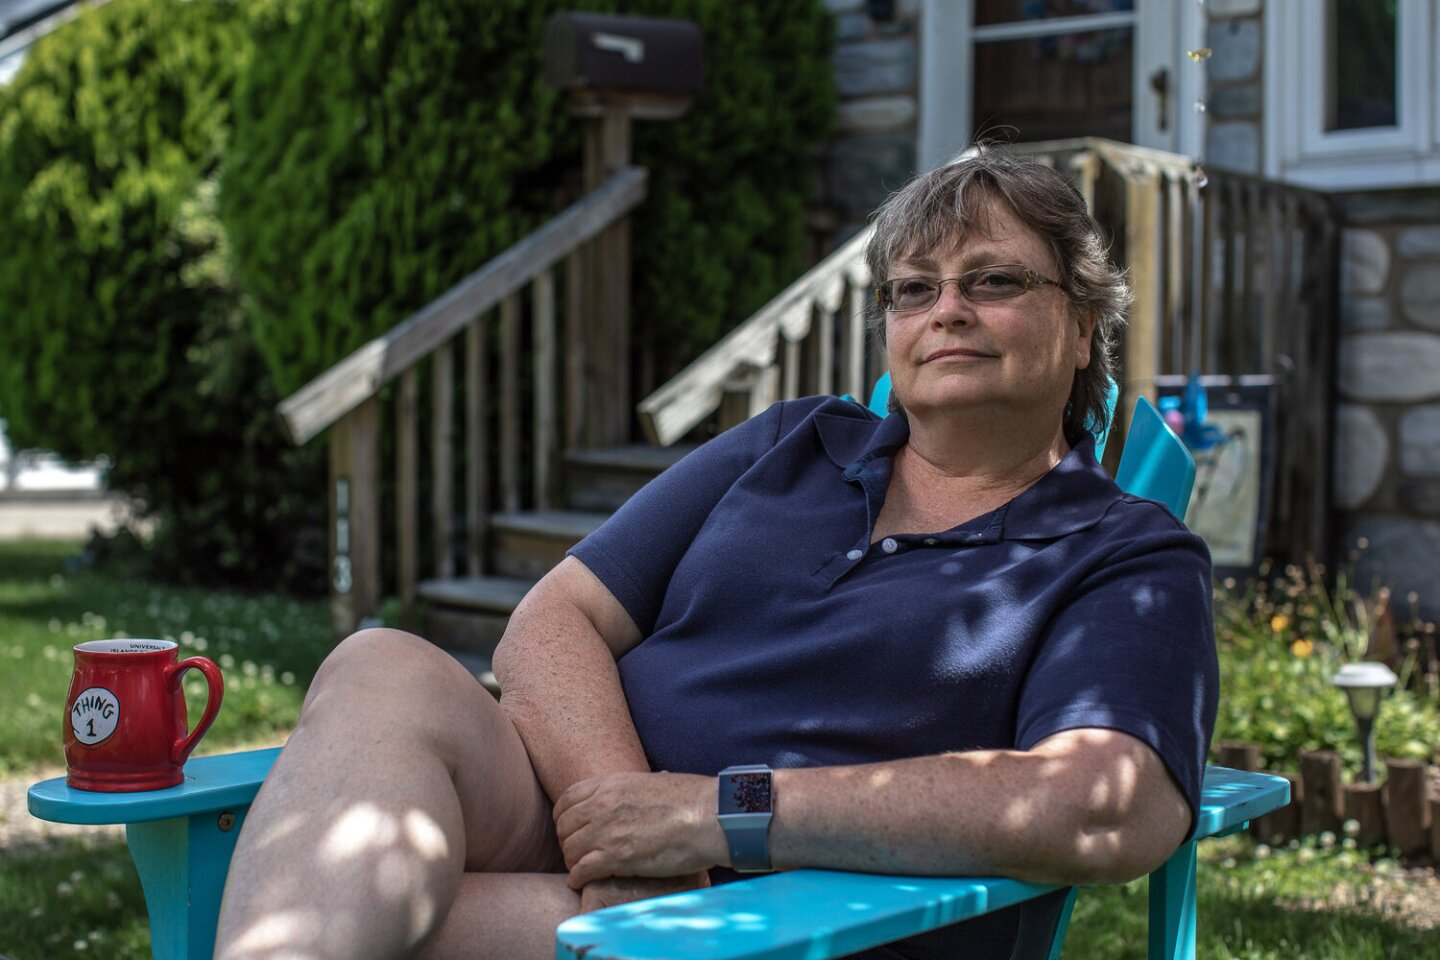 Susan sits on a bright blue wooden lawn chair. She's sitting leaned back, with her legs folded and her arms crossed. Patches of sunlight light different parts of her body as she smiles with a gaze slightly off from the camera.